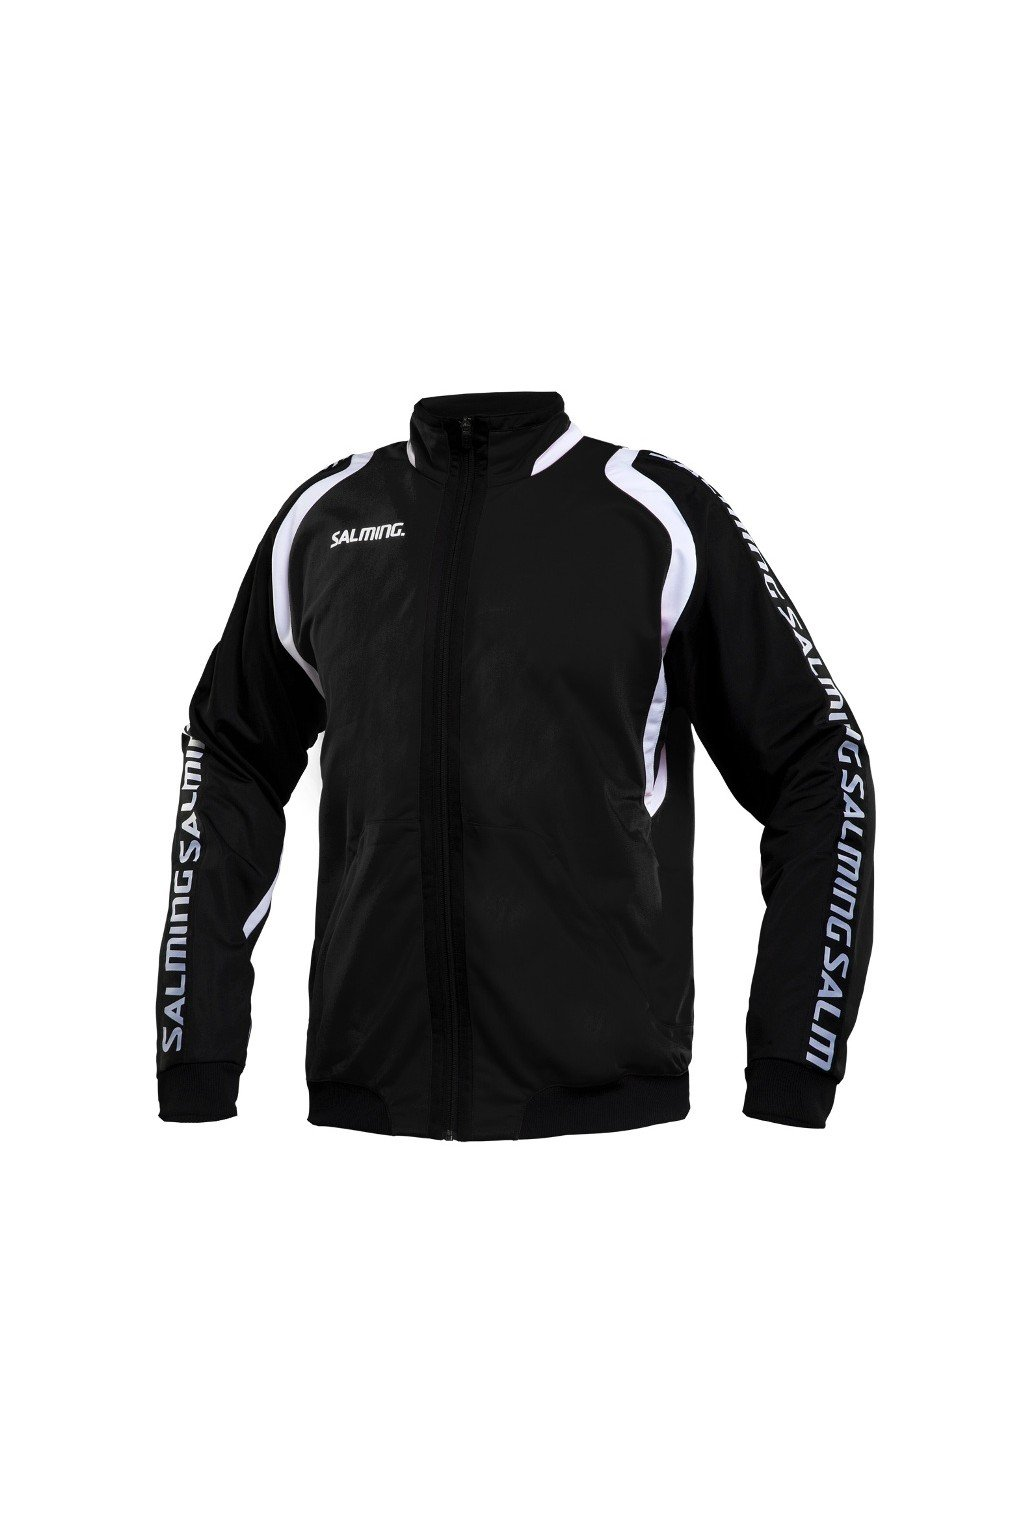 salming taurus wct jacket black m